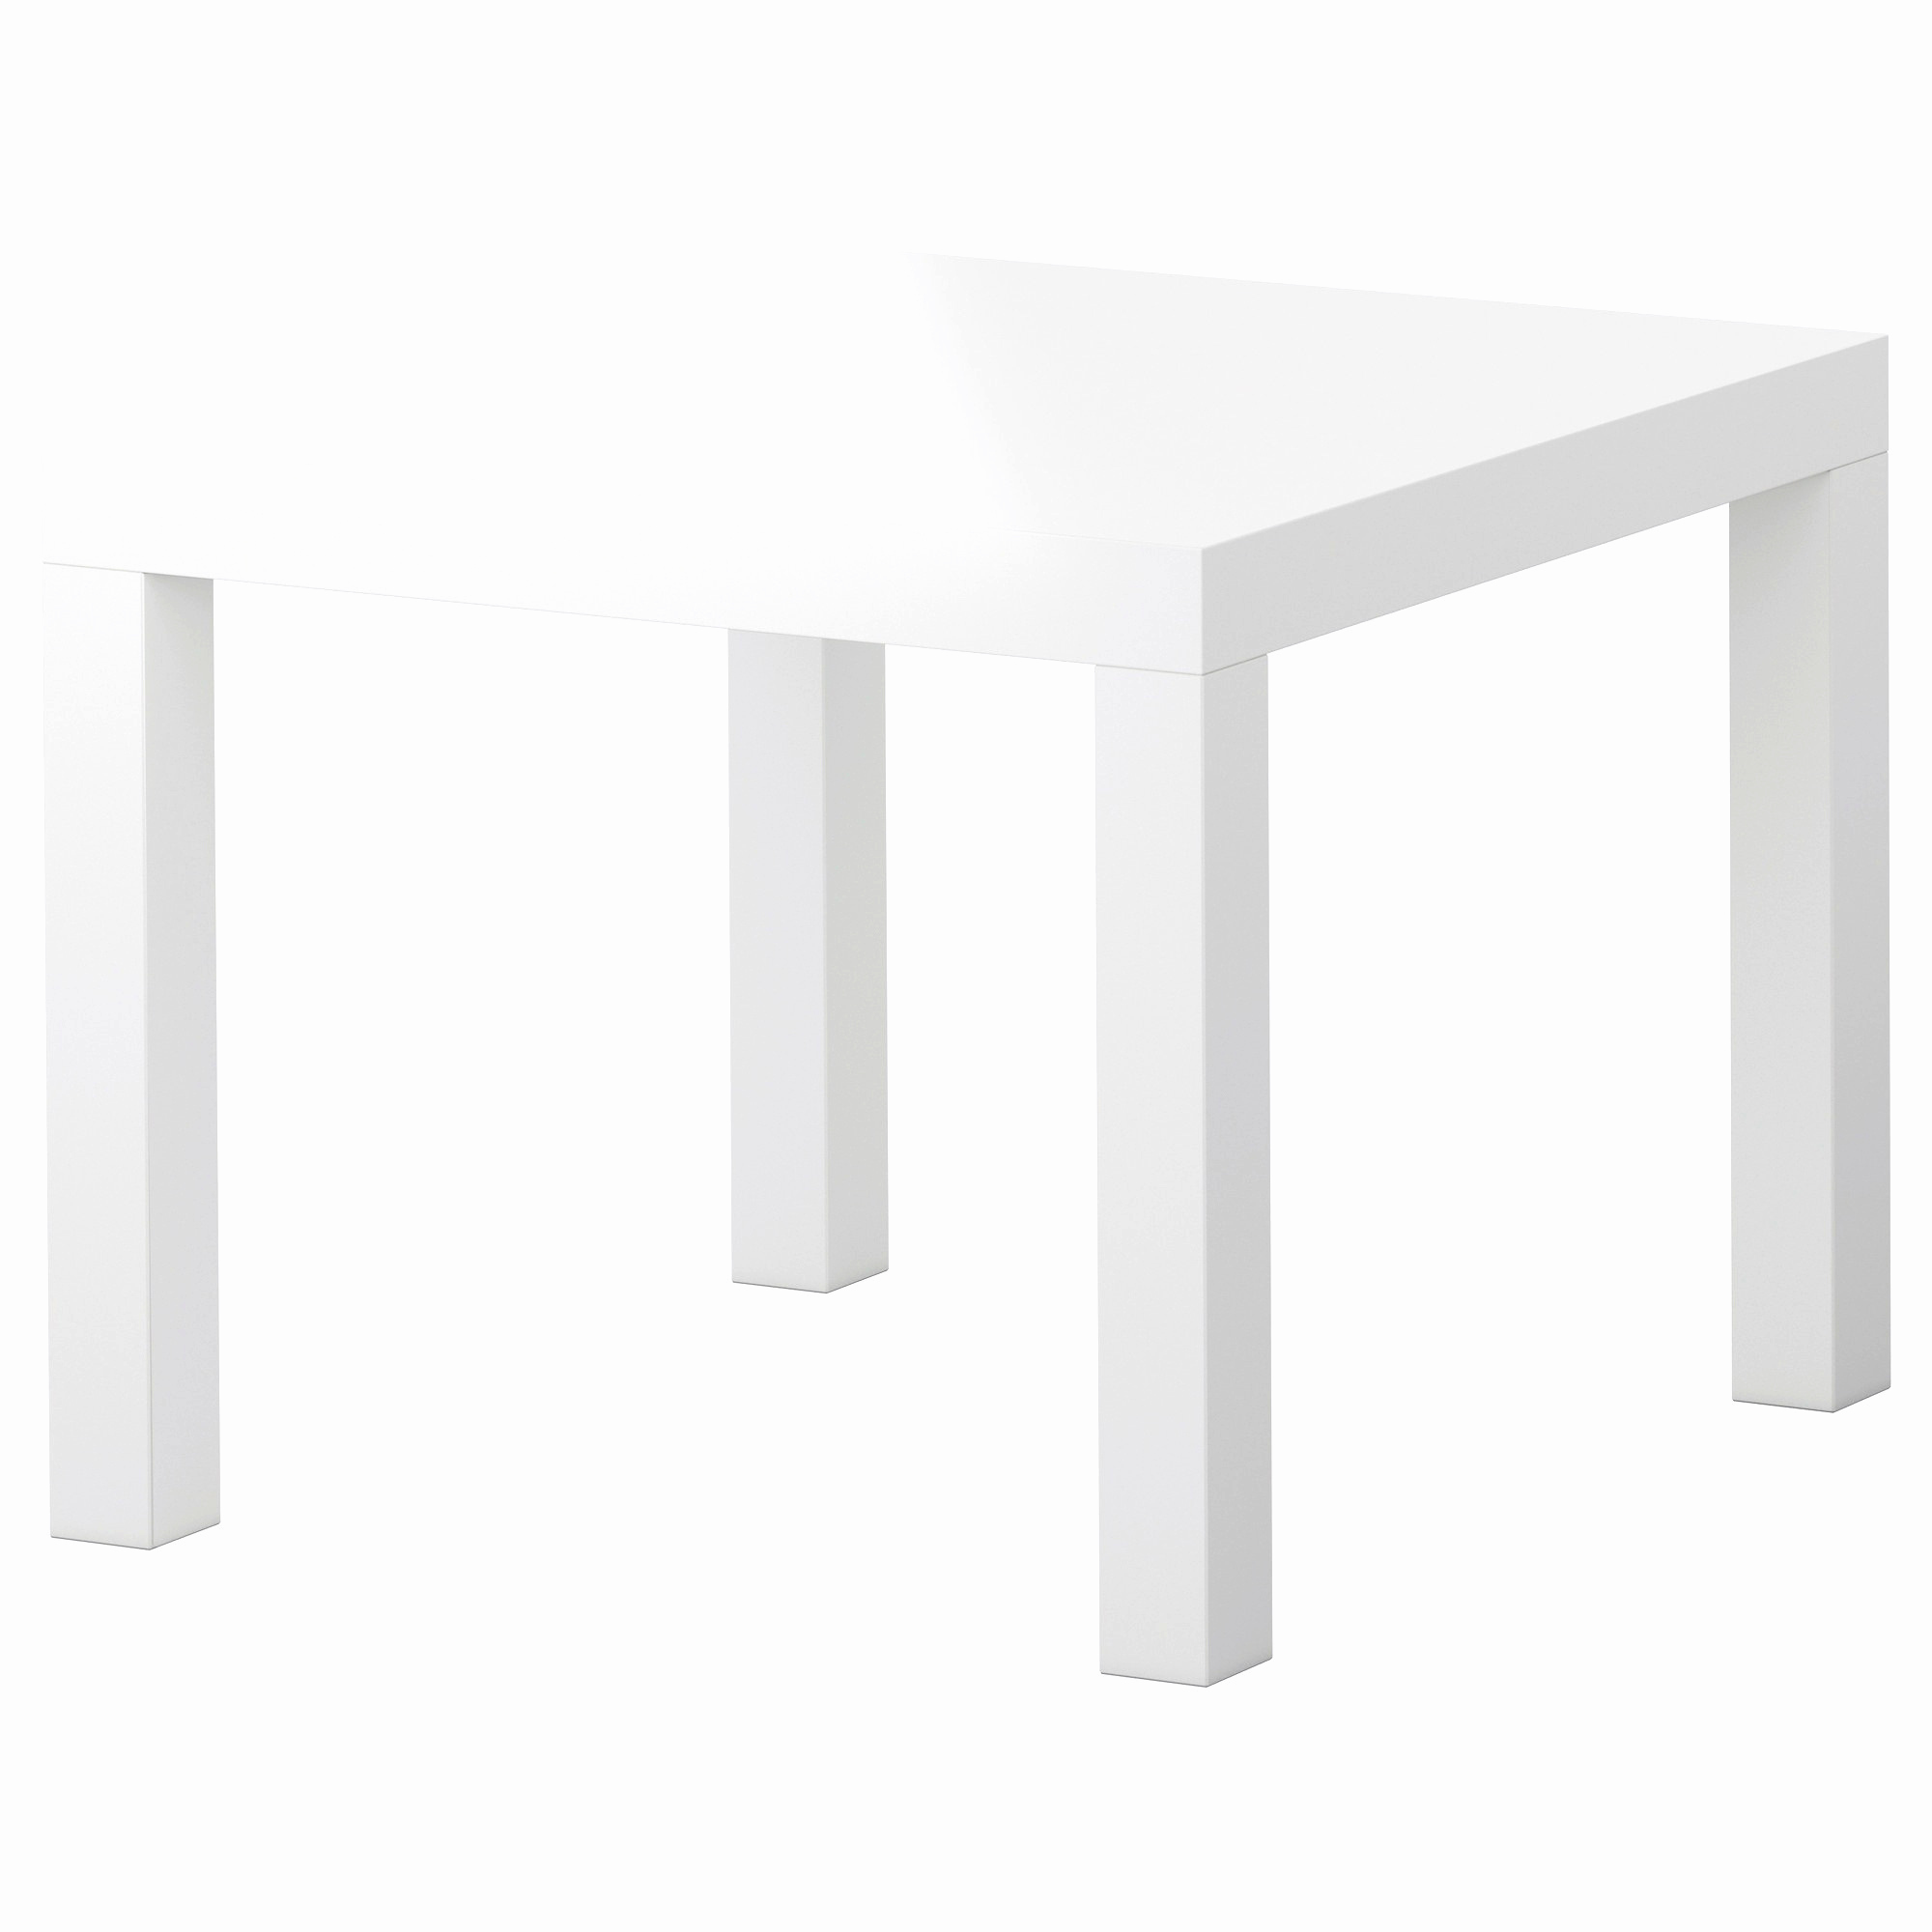 table de jardin alinea luxe table basse relevable extensible ikea nouveau tables de jardin table of table de jardin alinea